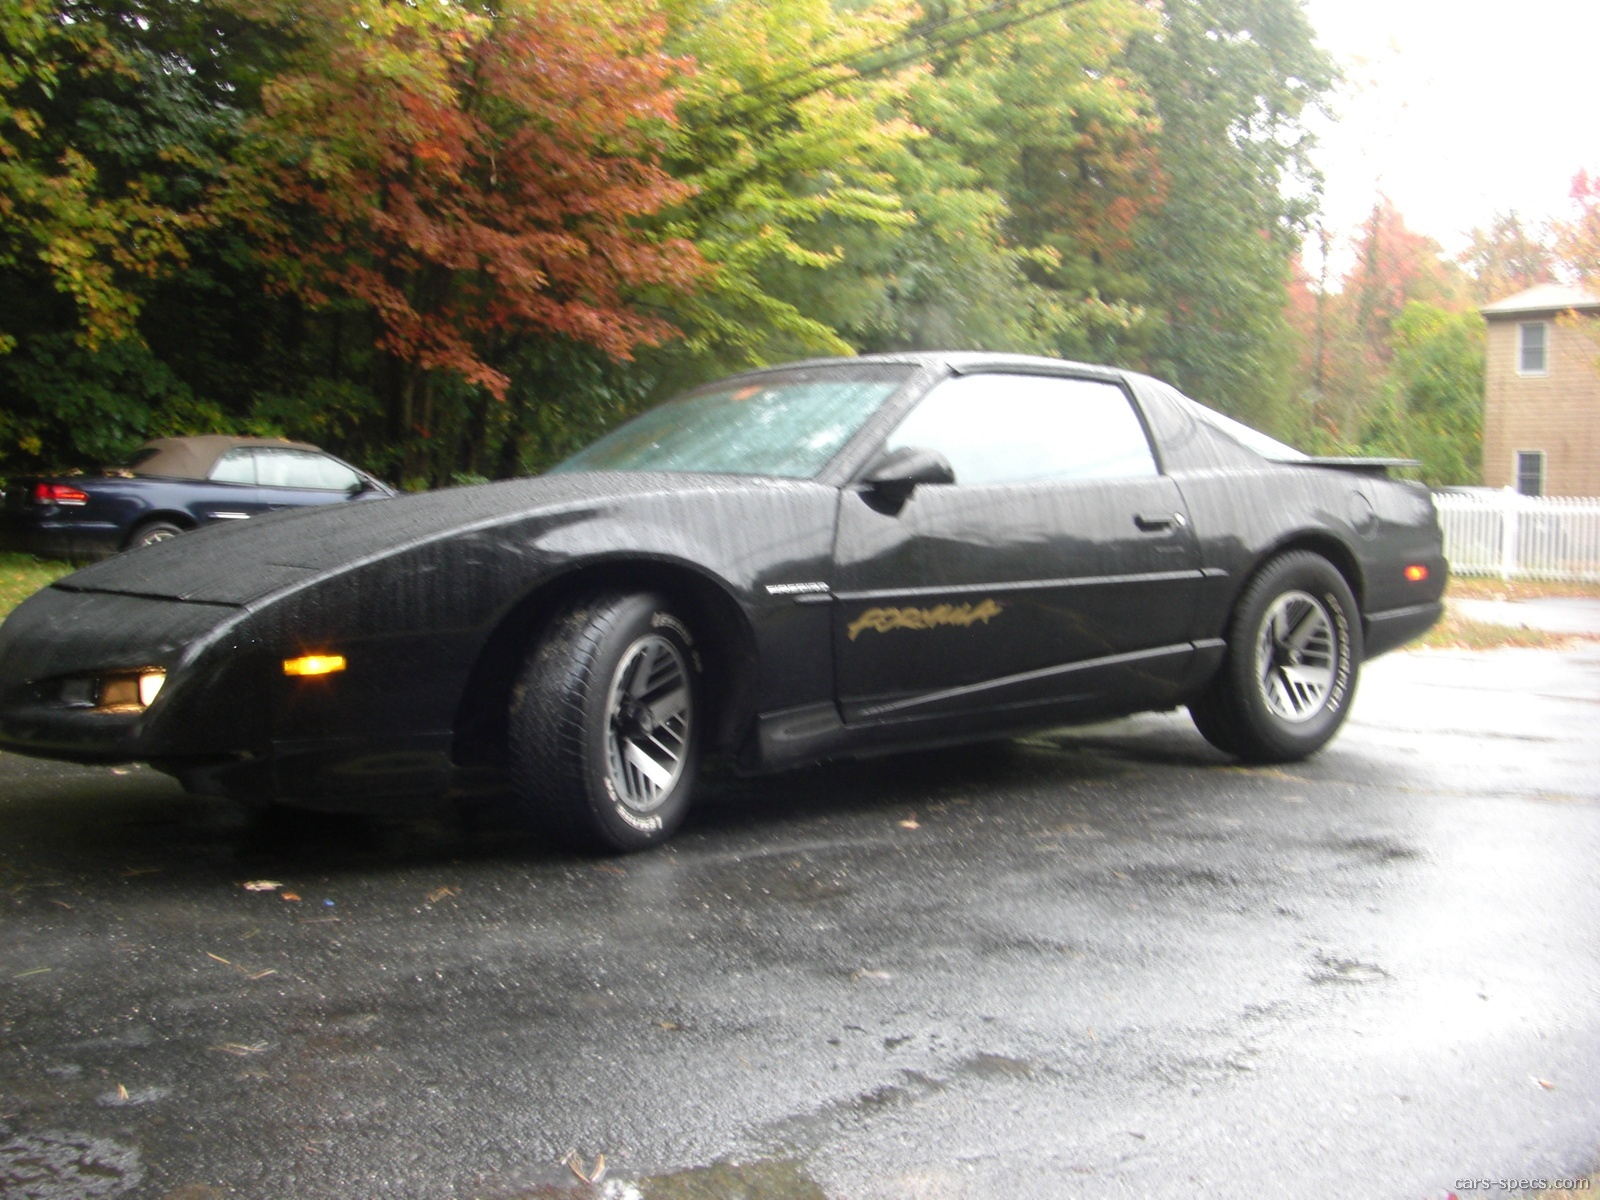 1990 Pontiac Firebird Hatchback Specifications Pictures Prices 1998 Trans Am Specs Formula 2dr 50l V8 5 Speed Manual